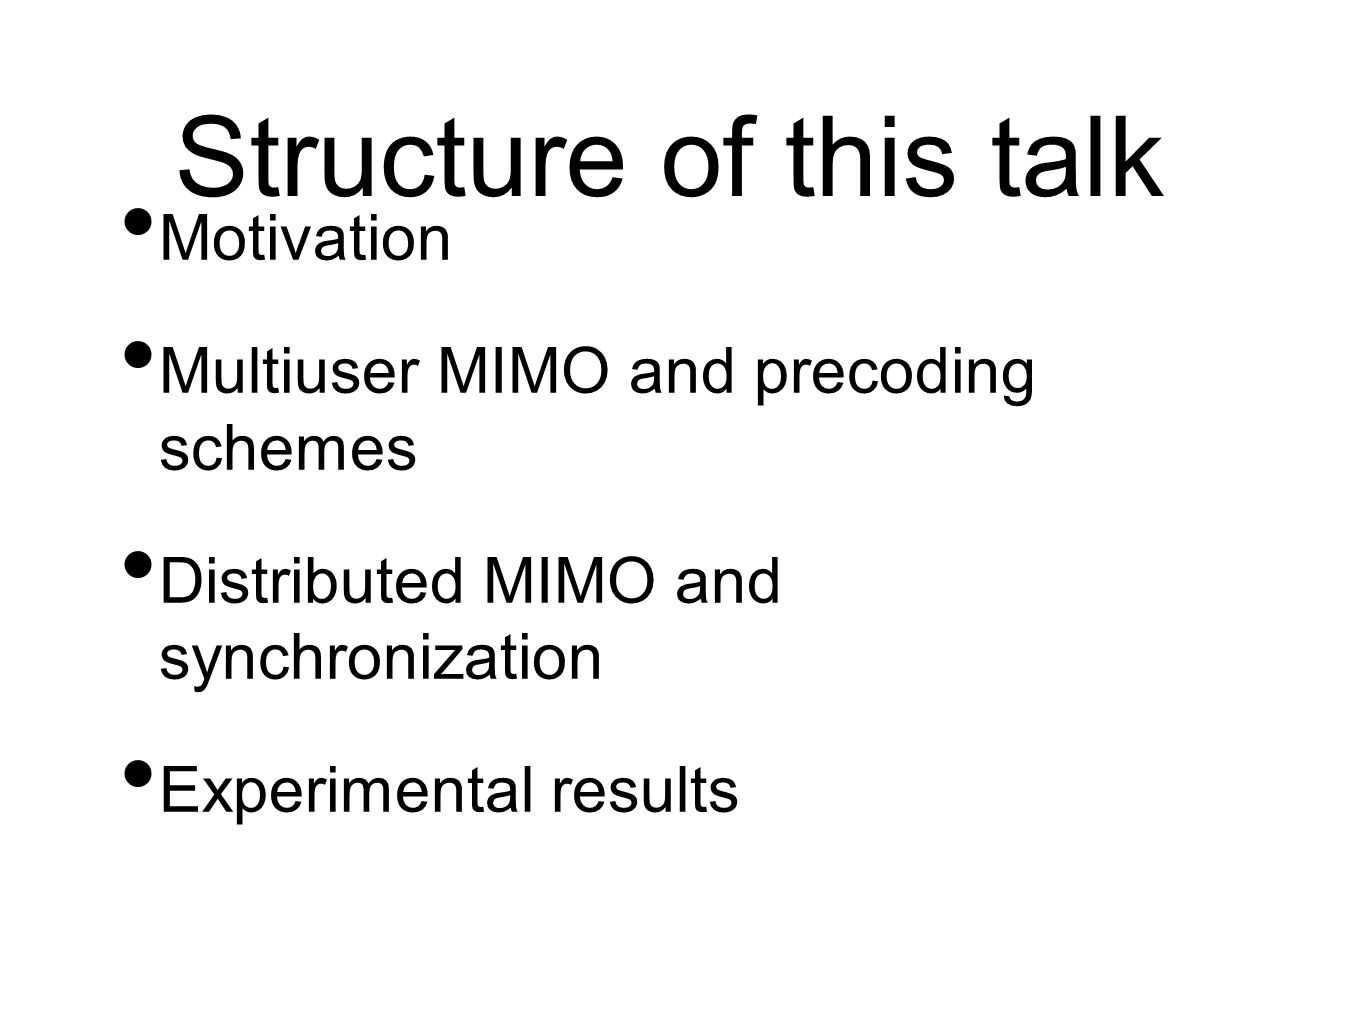 Structure of this talk Motivation Multiuser MIMO and precoding schemes Distributed MIMO and synchronization Experimental results